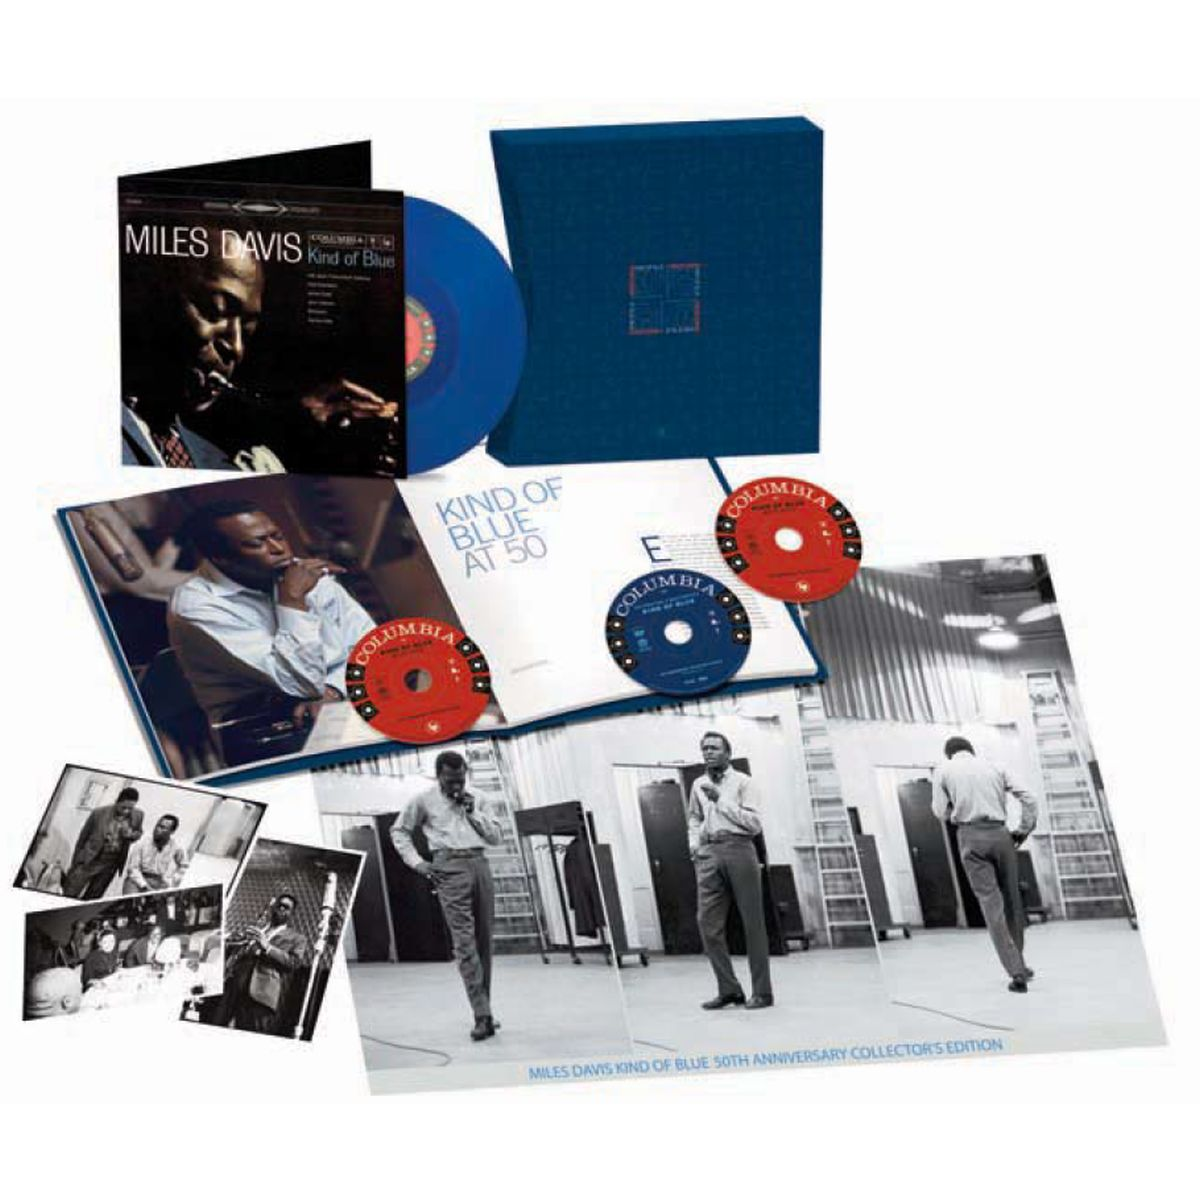 Miles Davis Kind Of Blue Deluxe 50th Anniversary Collector's Edition Box Set (2 CDs / 1 DVD / 1 Blue Vinyl LP)